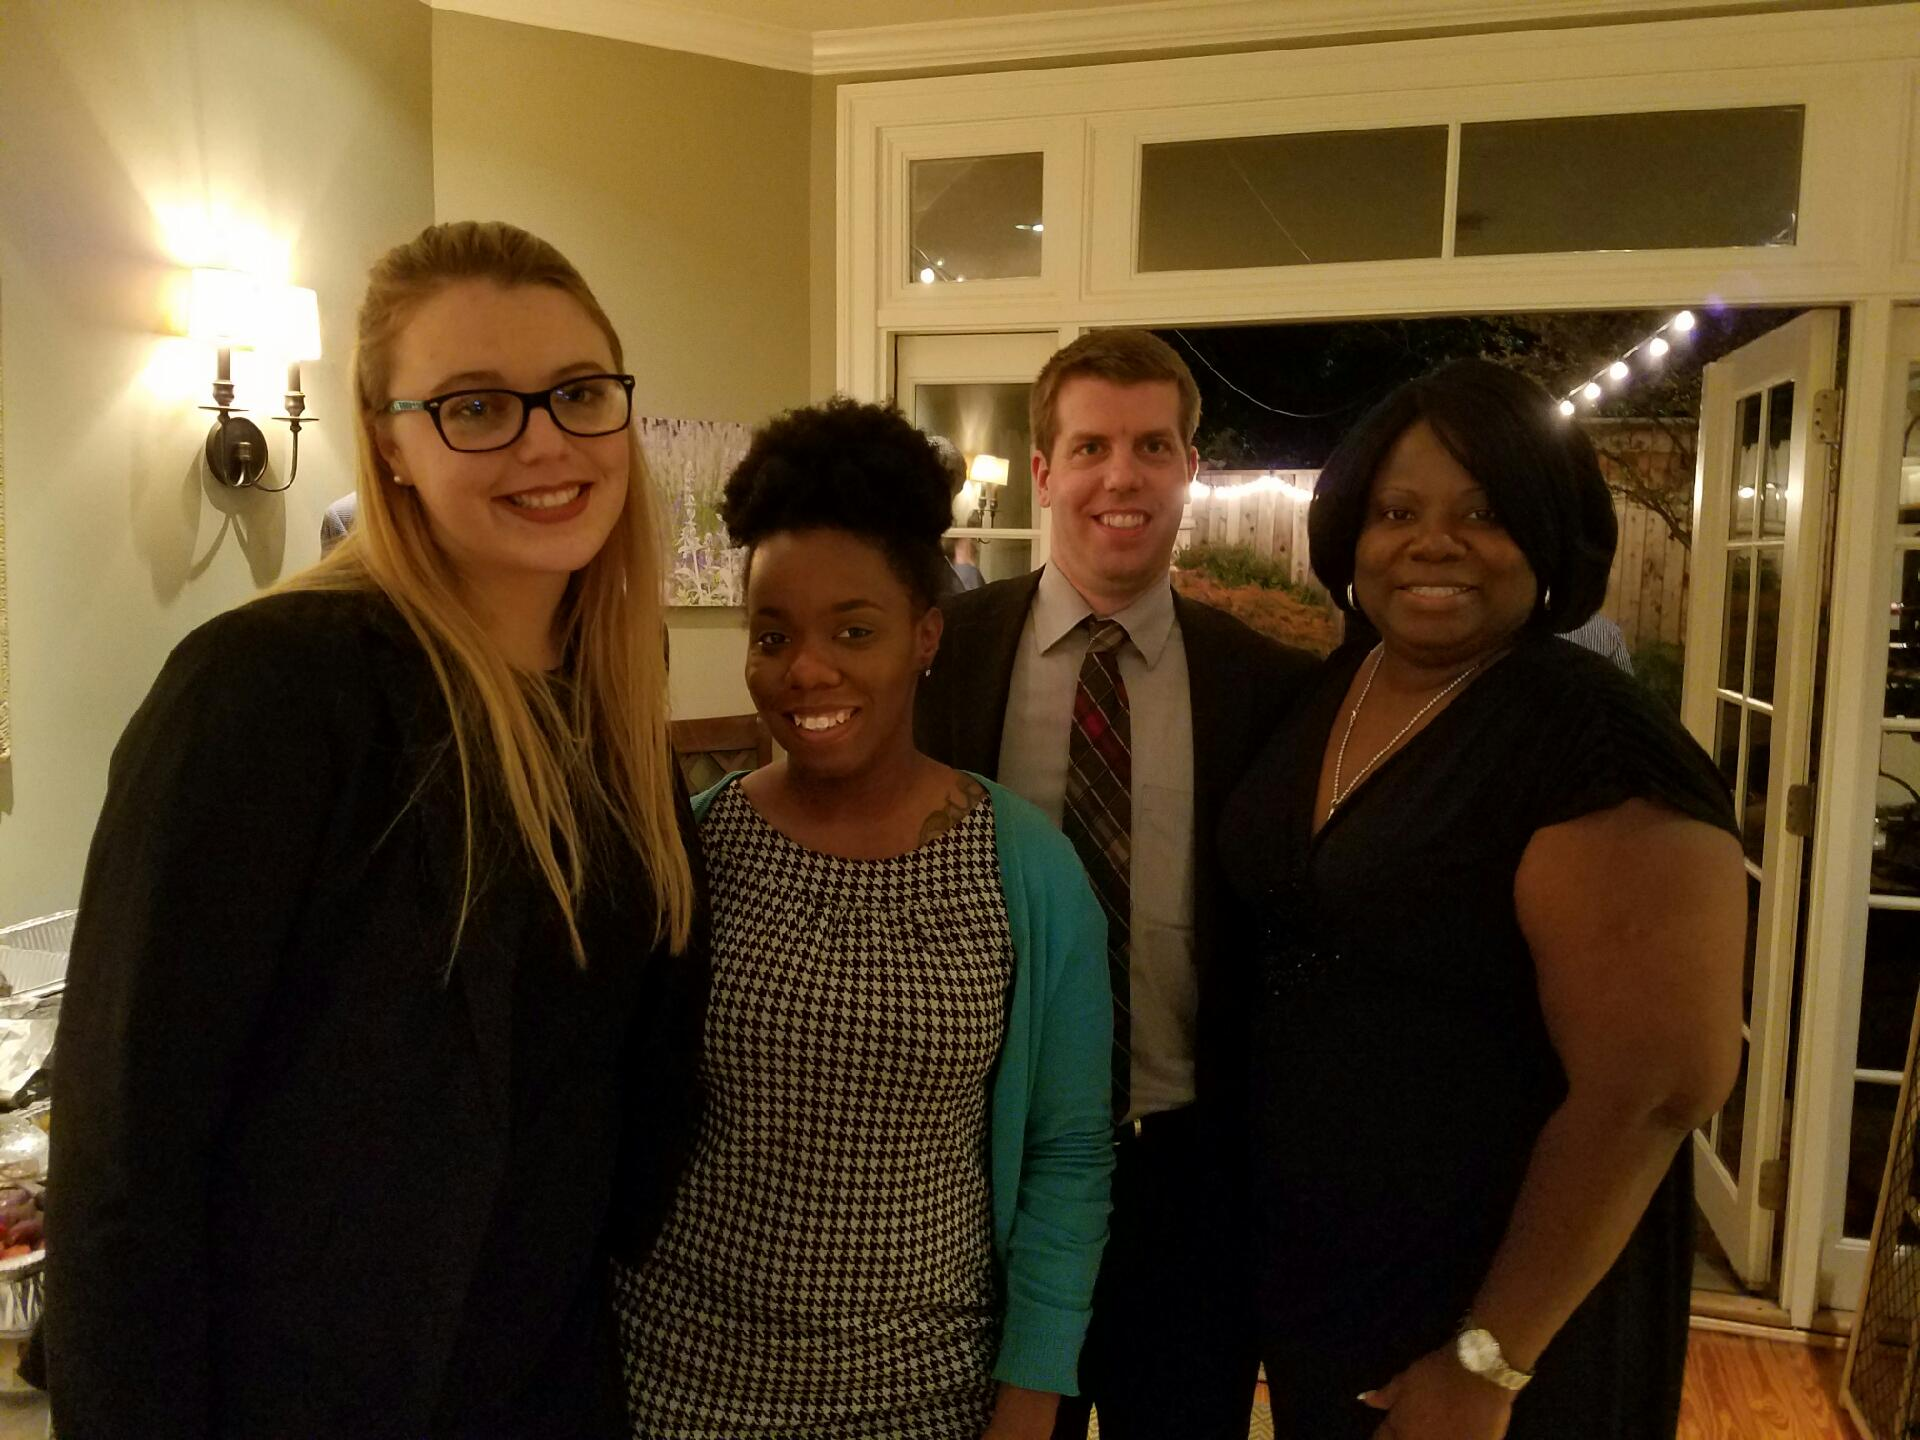 The DCC team, from L to R: Emma Gross, Breyana Franklin, Peter Morscheck, and Marsha Smith